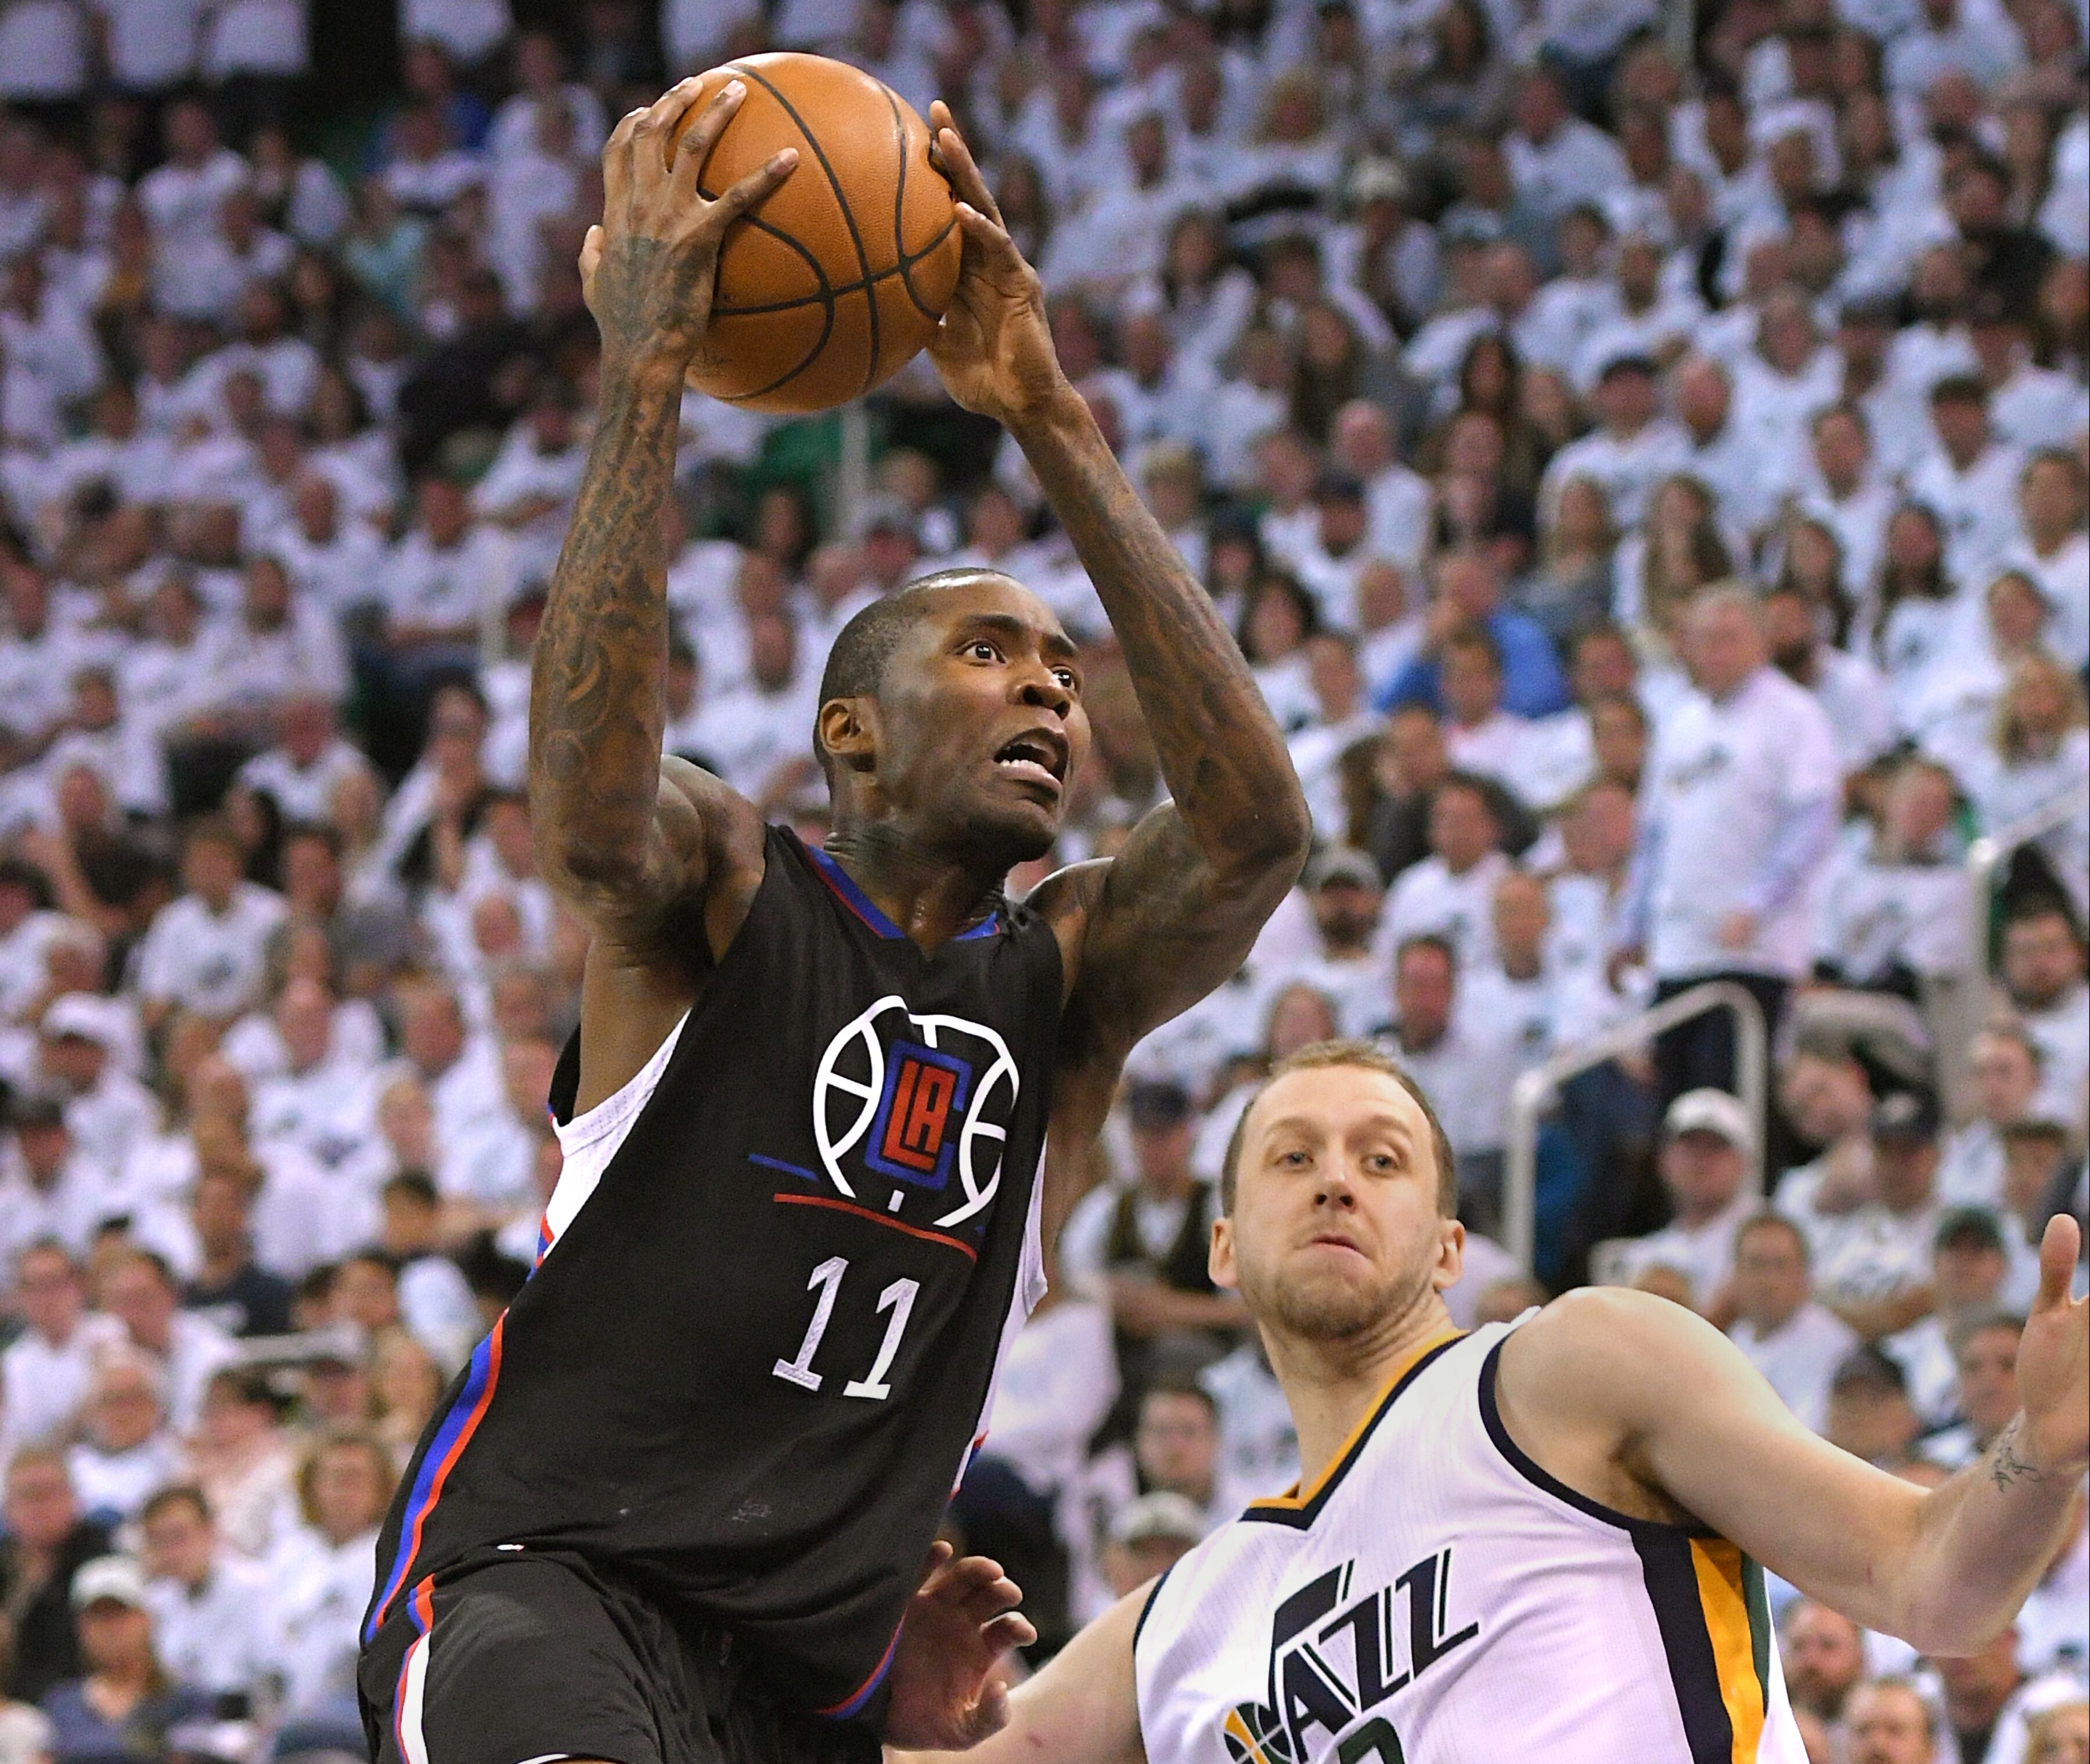 Pros and cons of Jamal Crawford on the Timberwolves